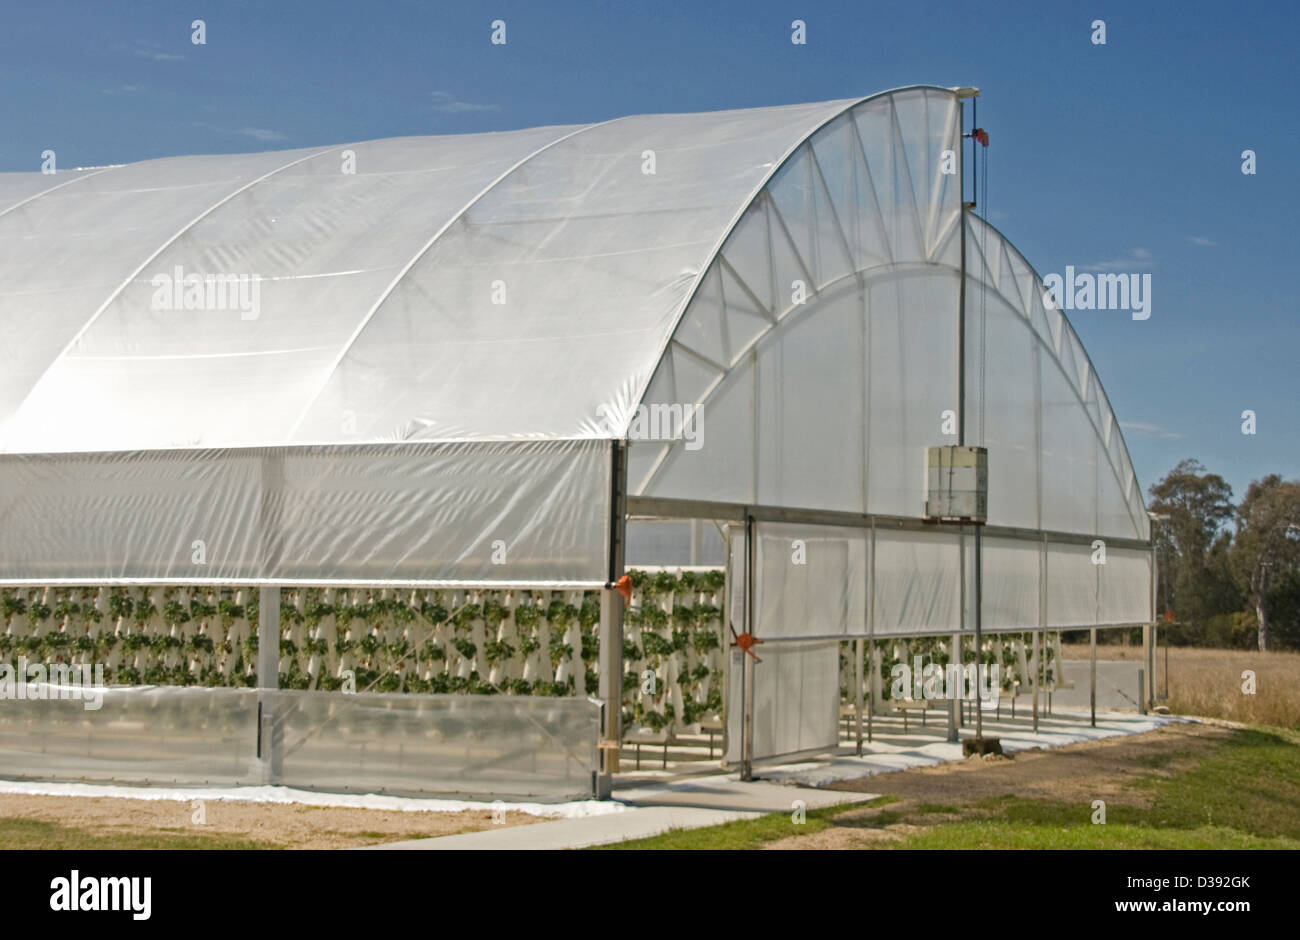 Large plastic covered tunnel greenhouse used in production of hydroponic strawberries - against a bright blue sky - Stock Image